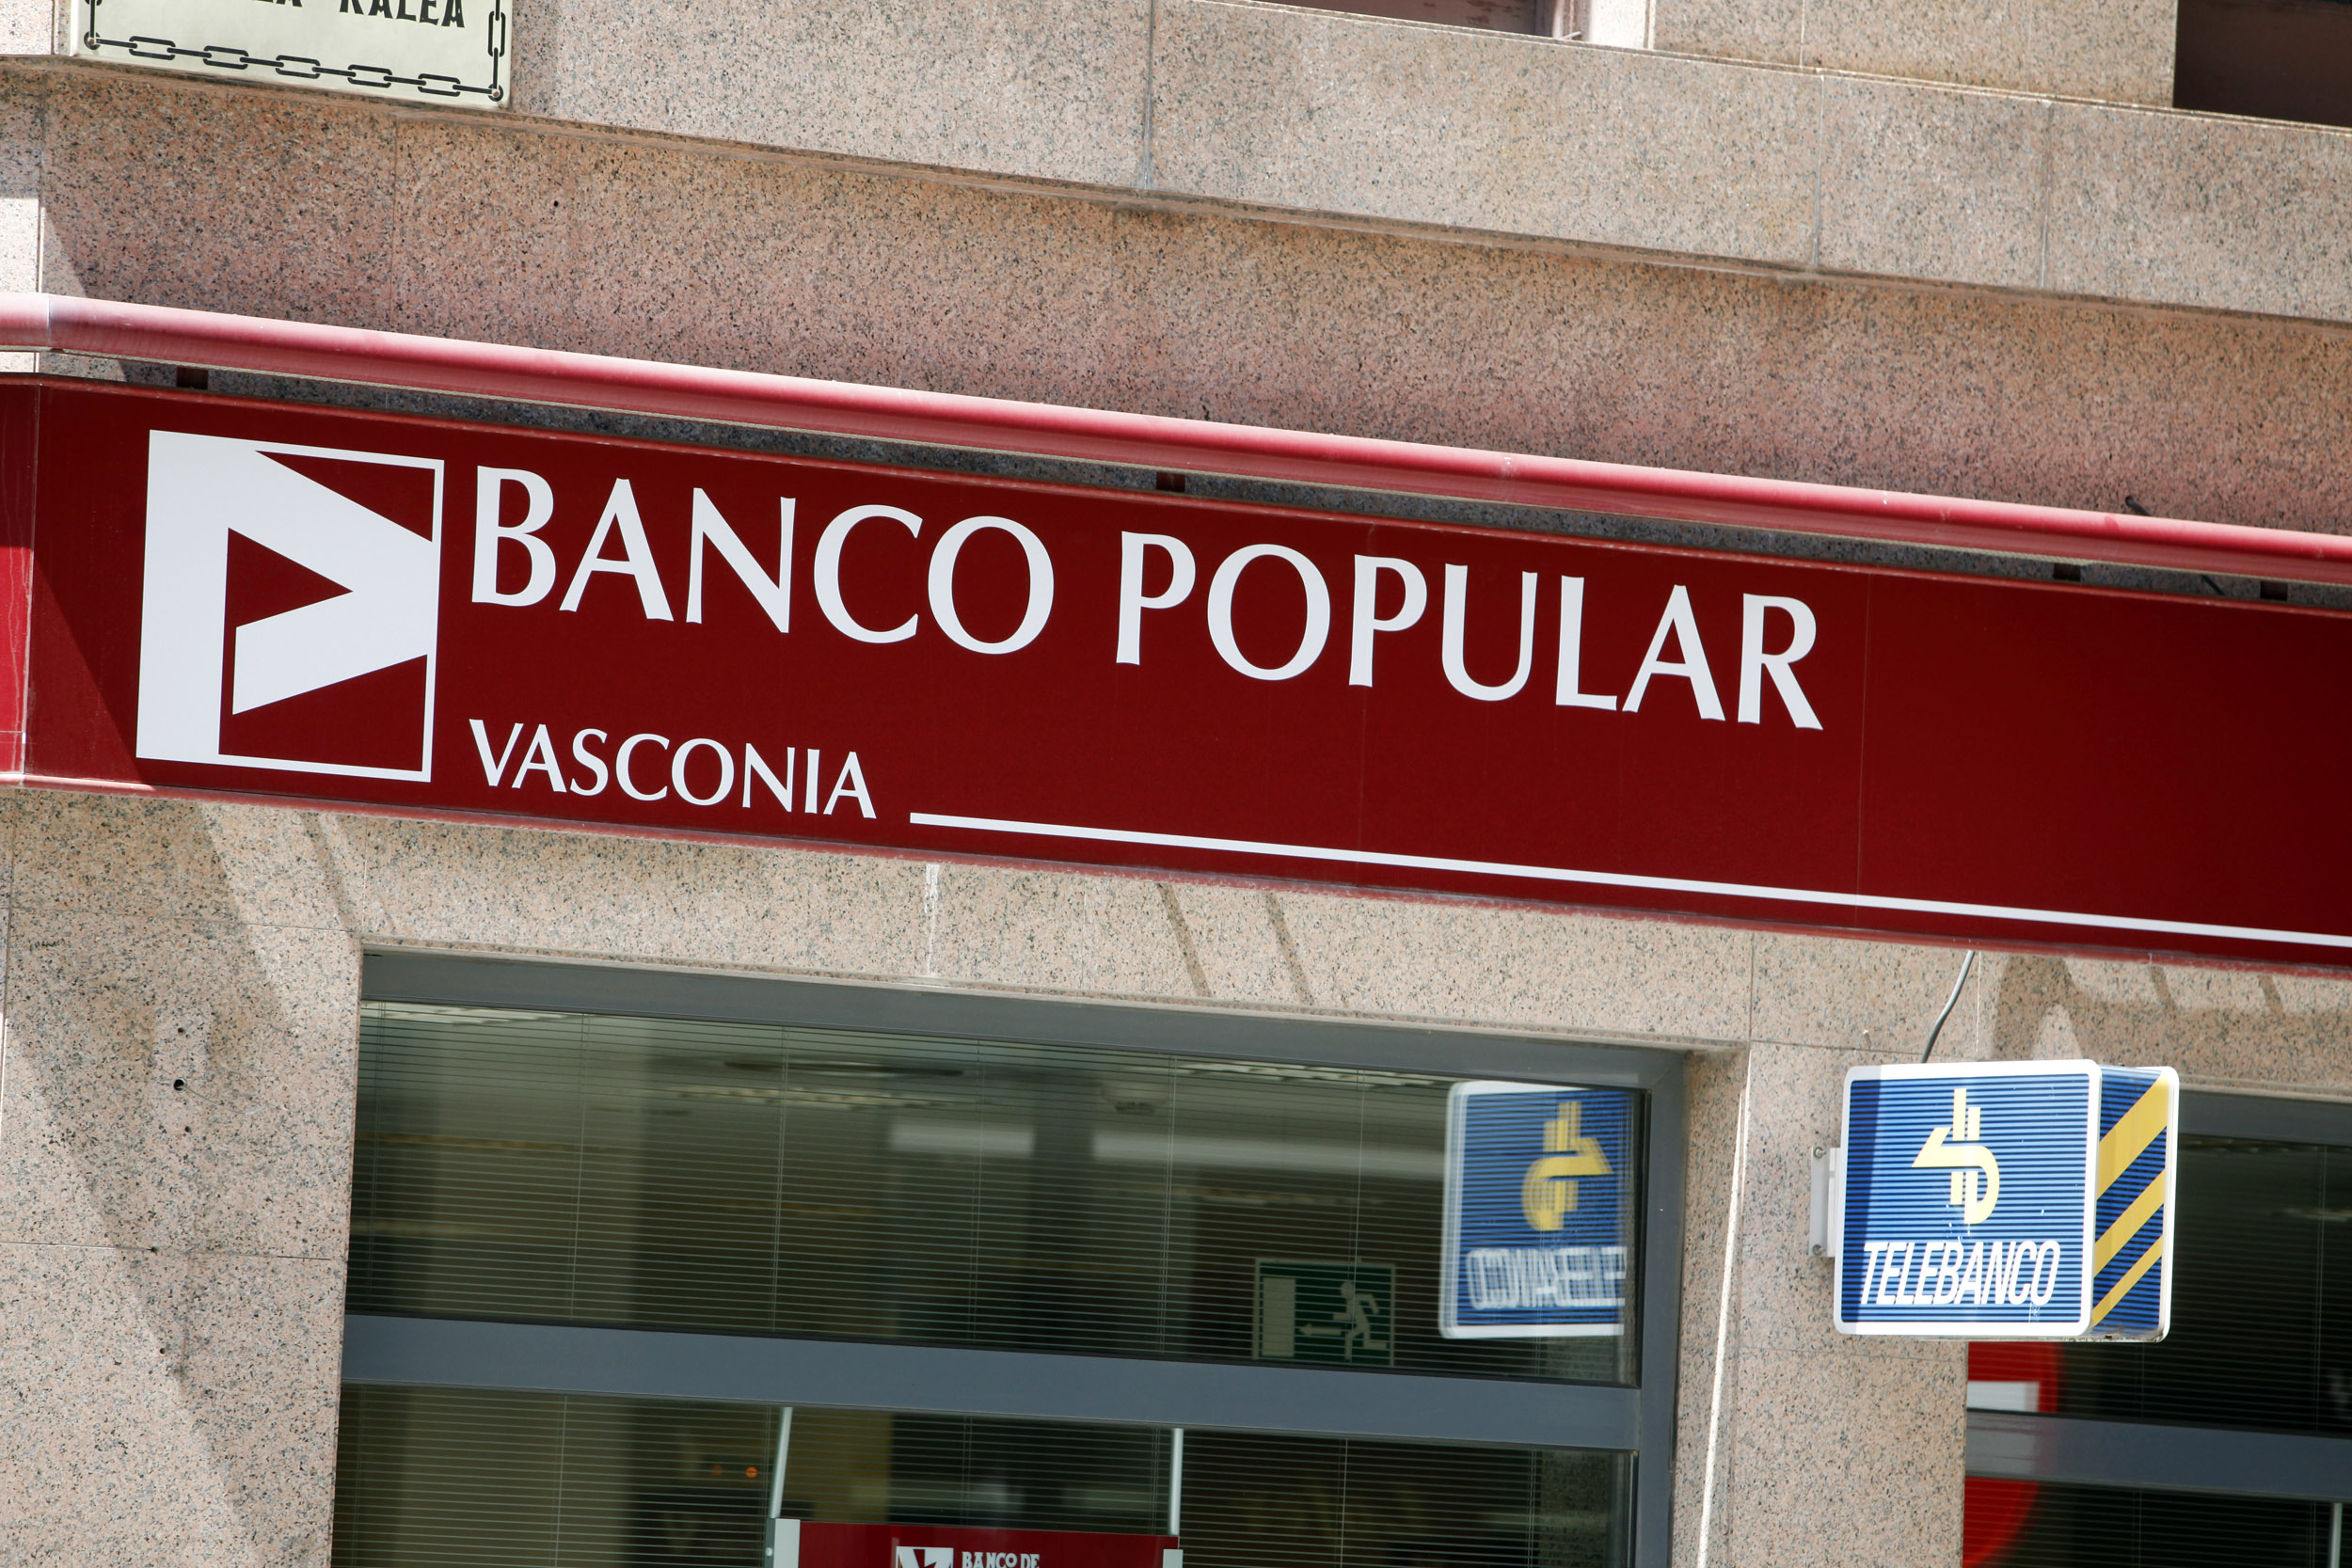 Spanje, Pamplona, Spain, bank, Banco Popular, telebanco, logo